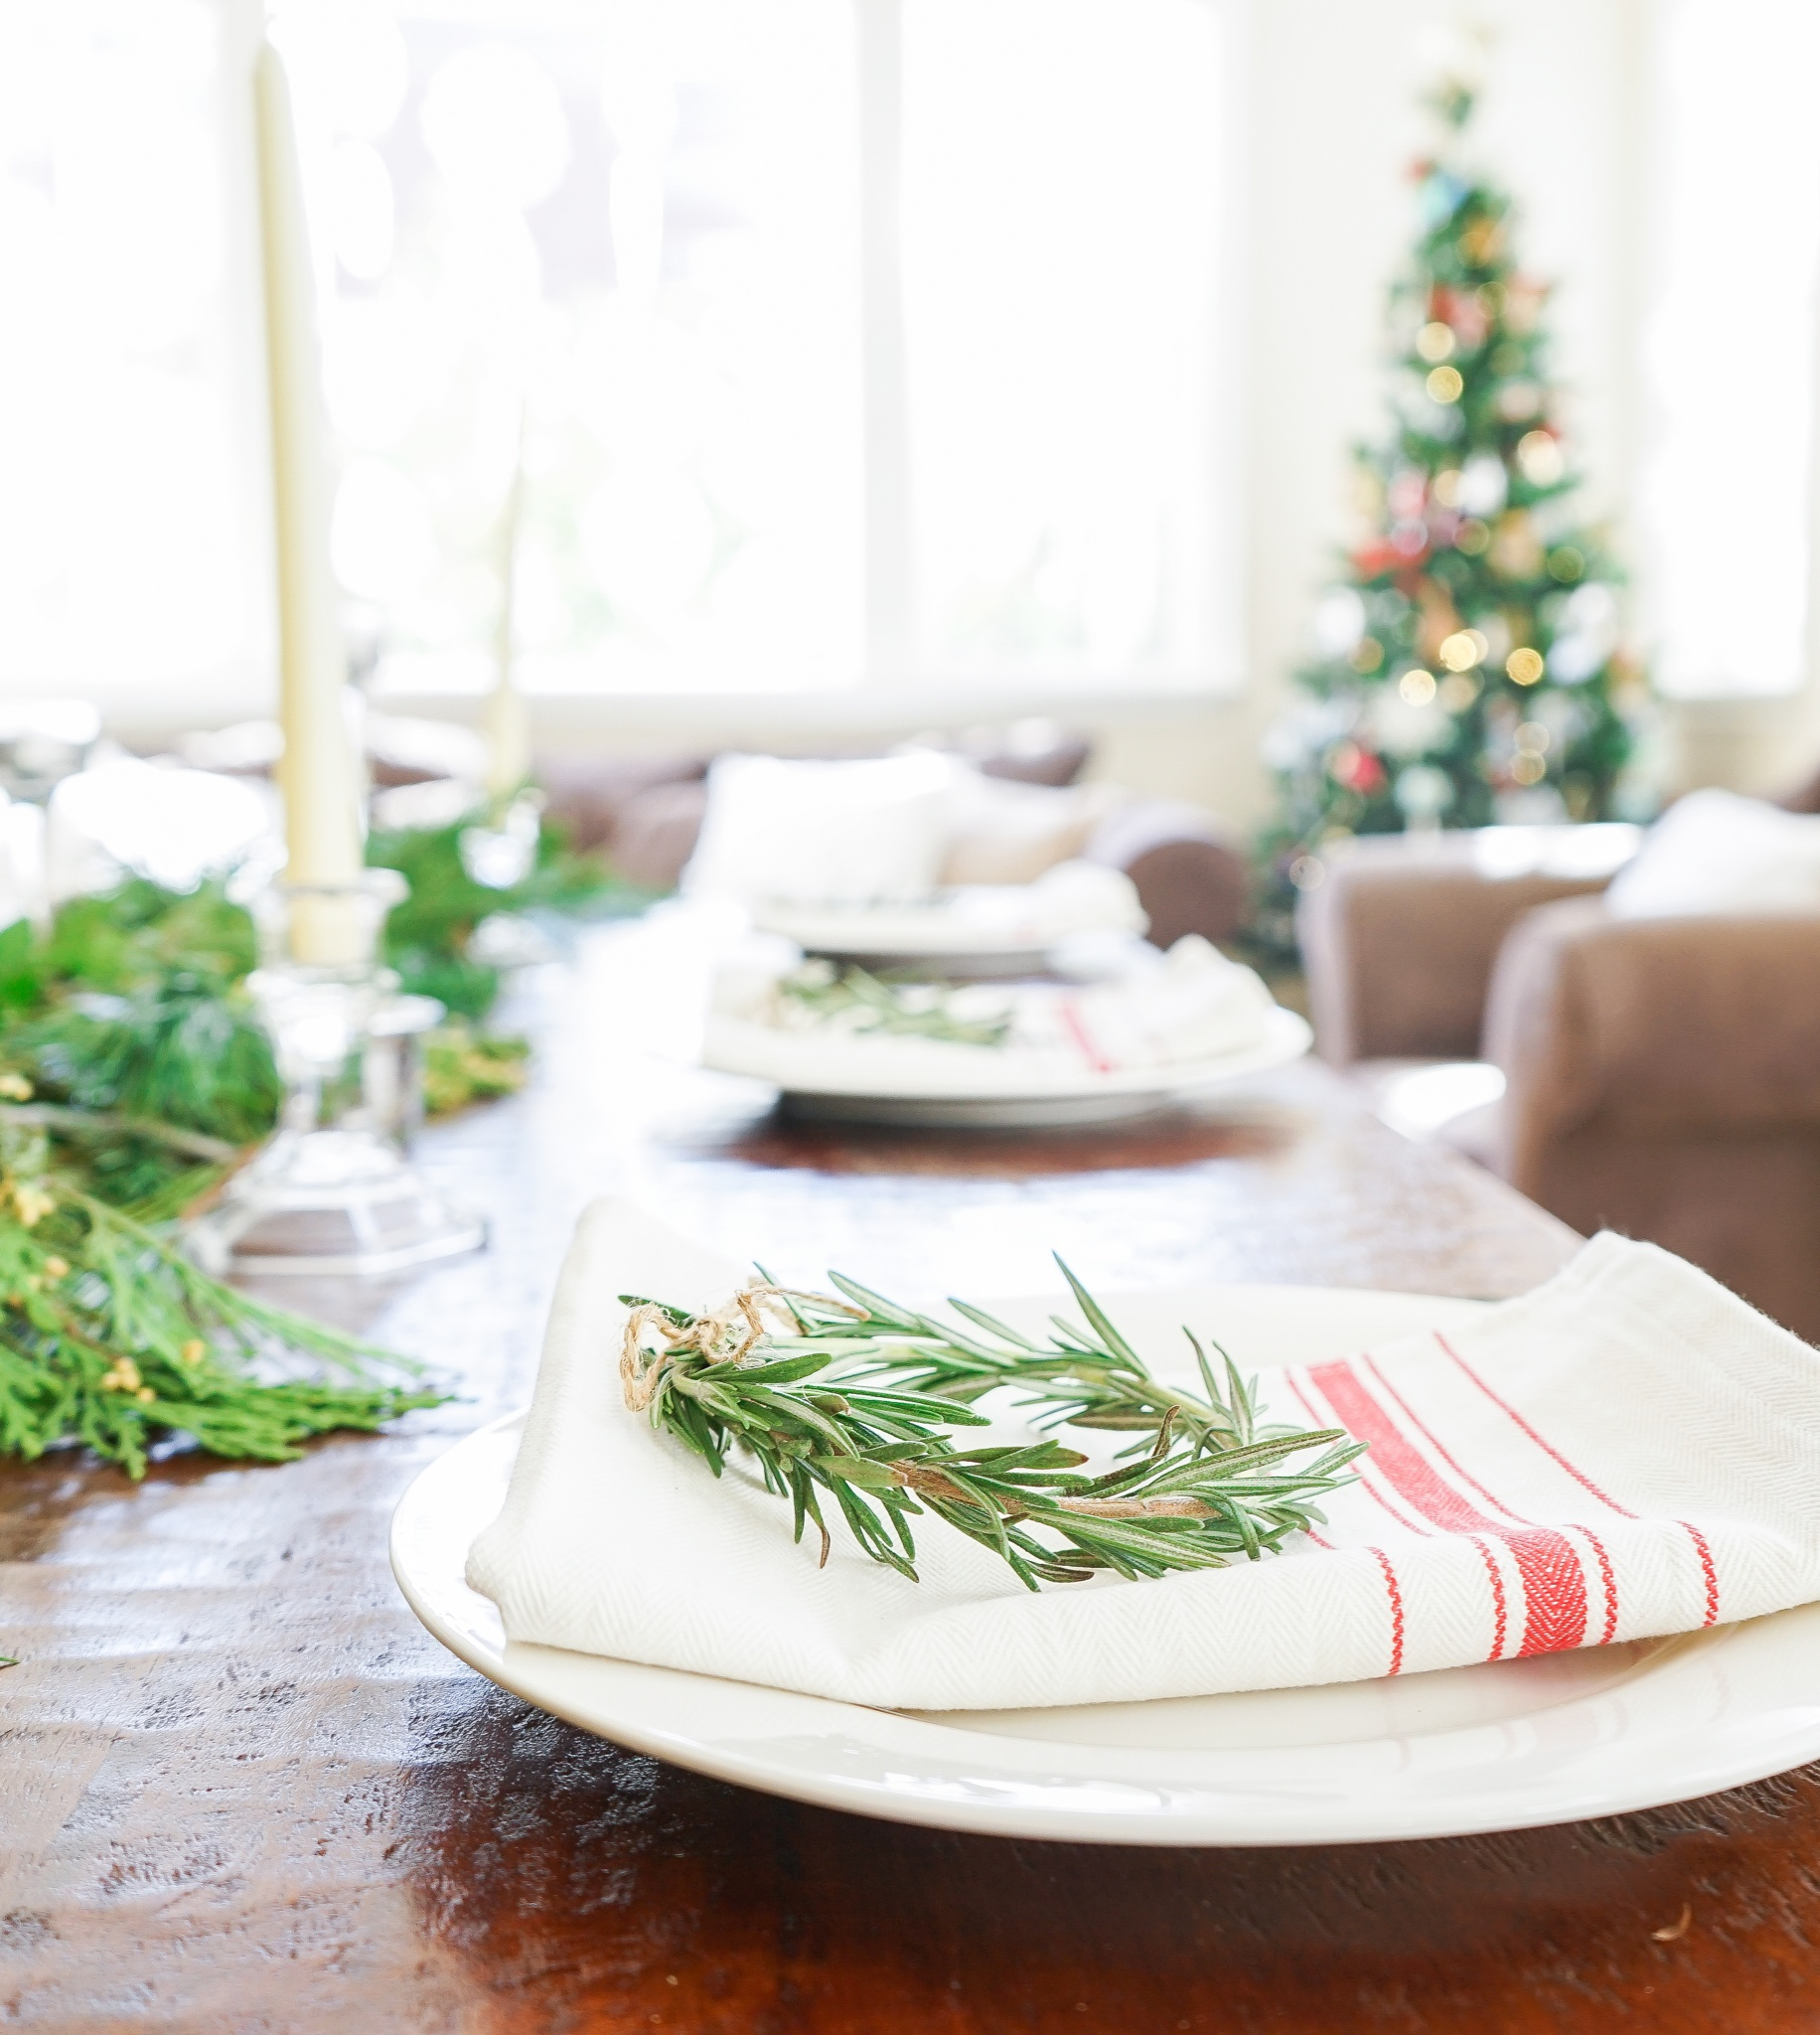 Rosemary wreath place settings